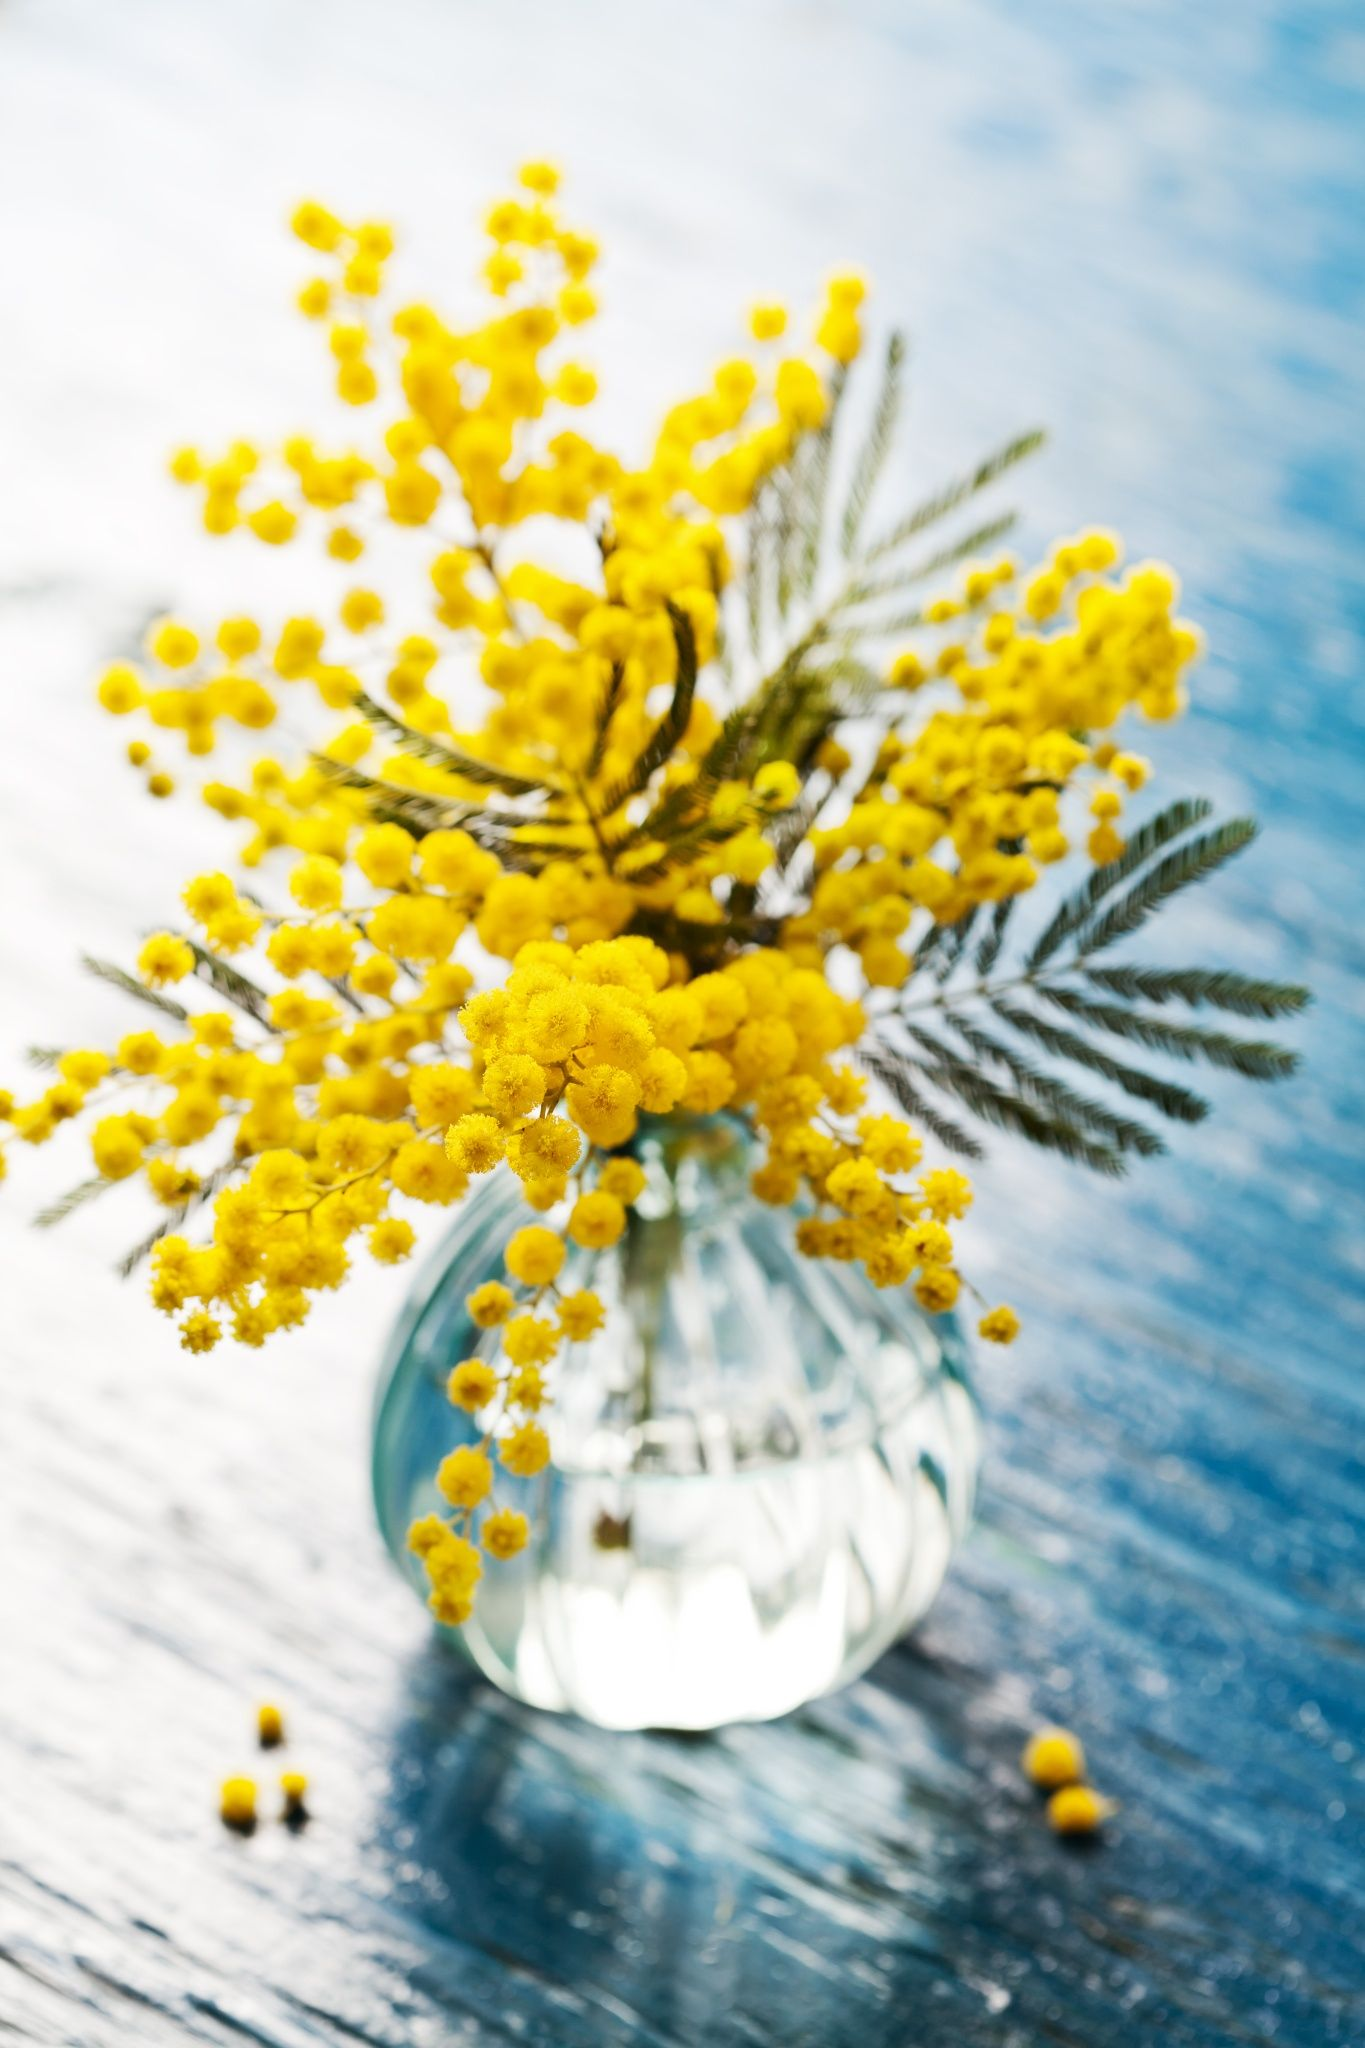 Mimosa Plant Kopen Joys Of Spring Mimosa Flowers Or Silver Wattle In Vase